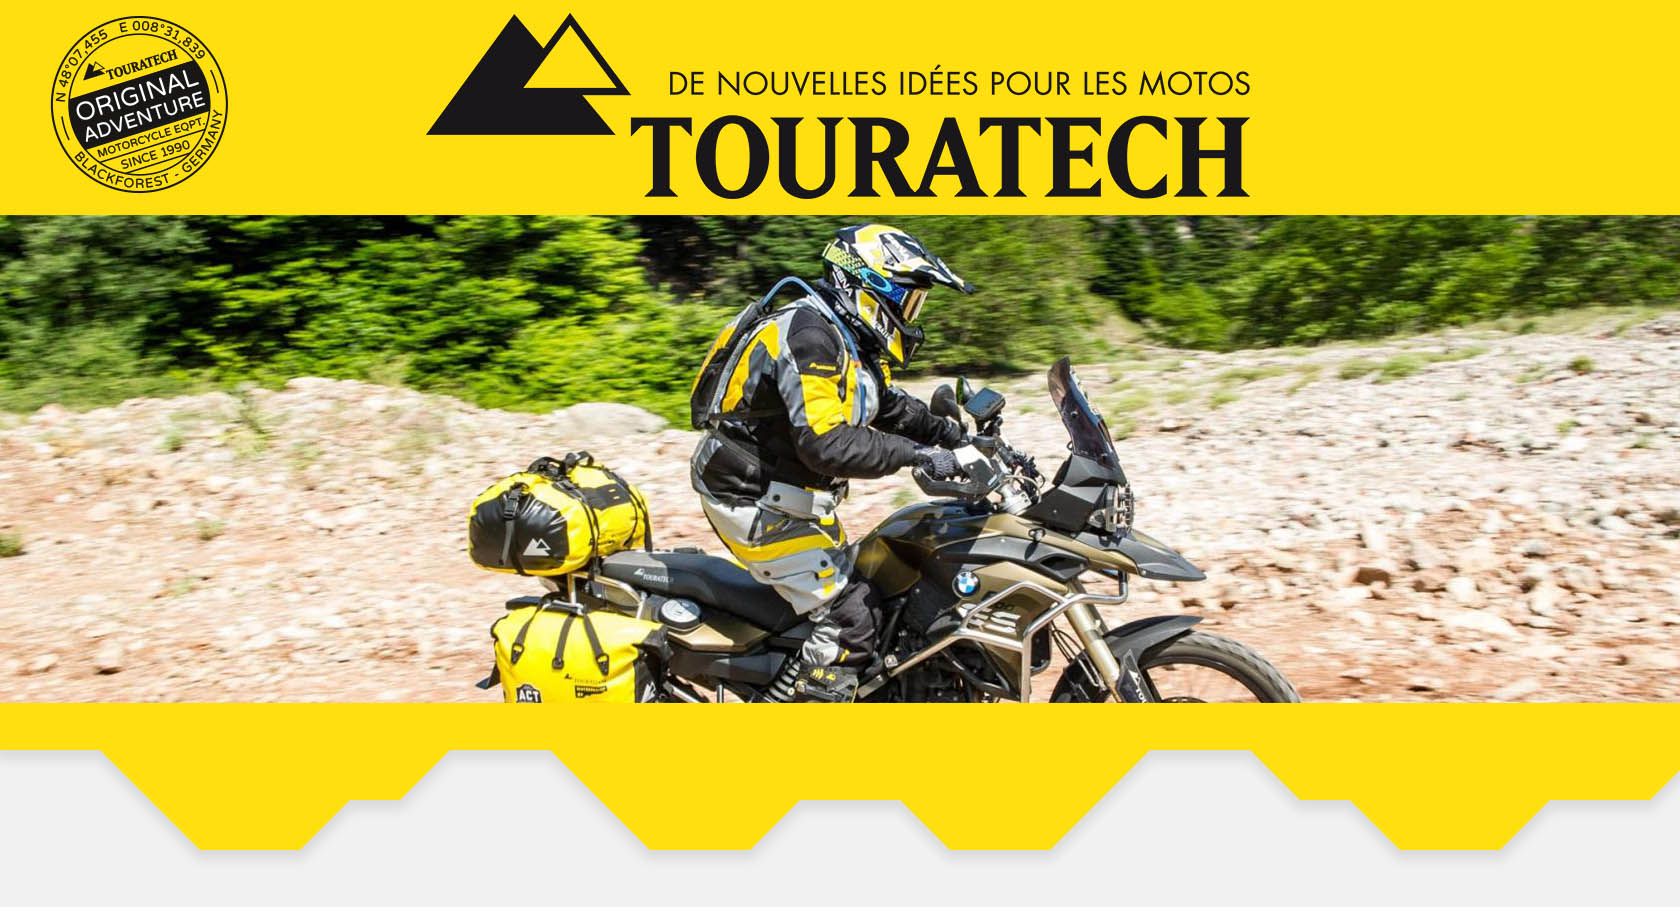 Touratech France